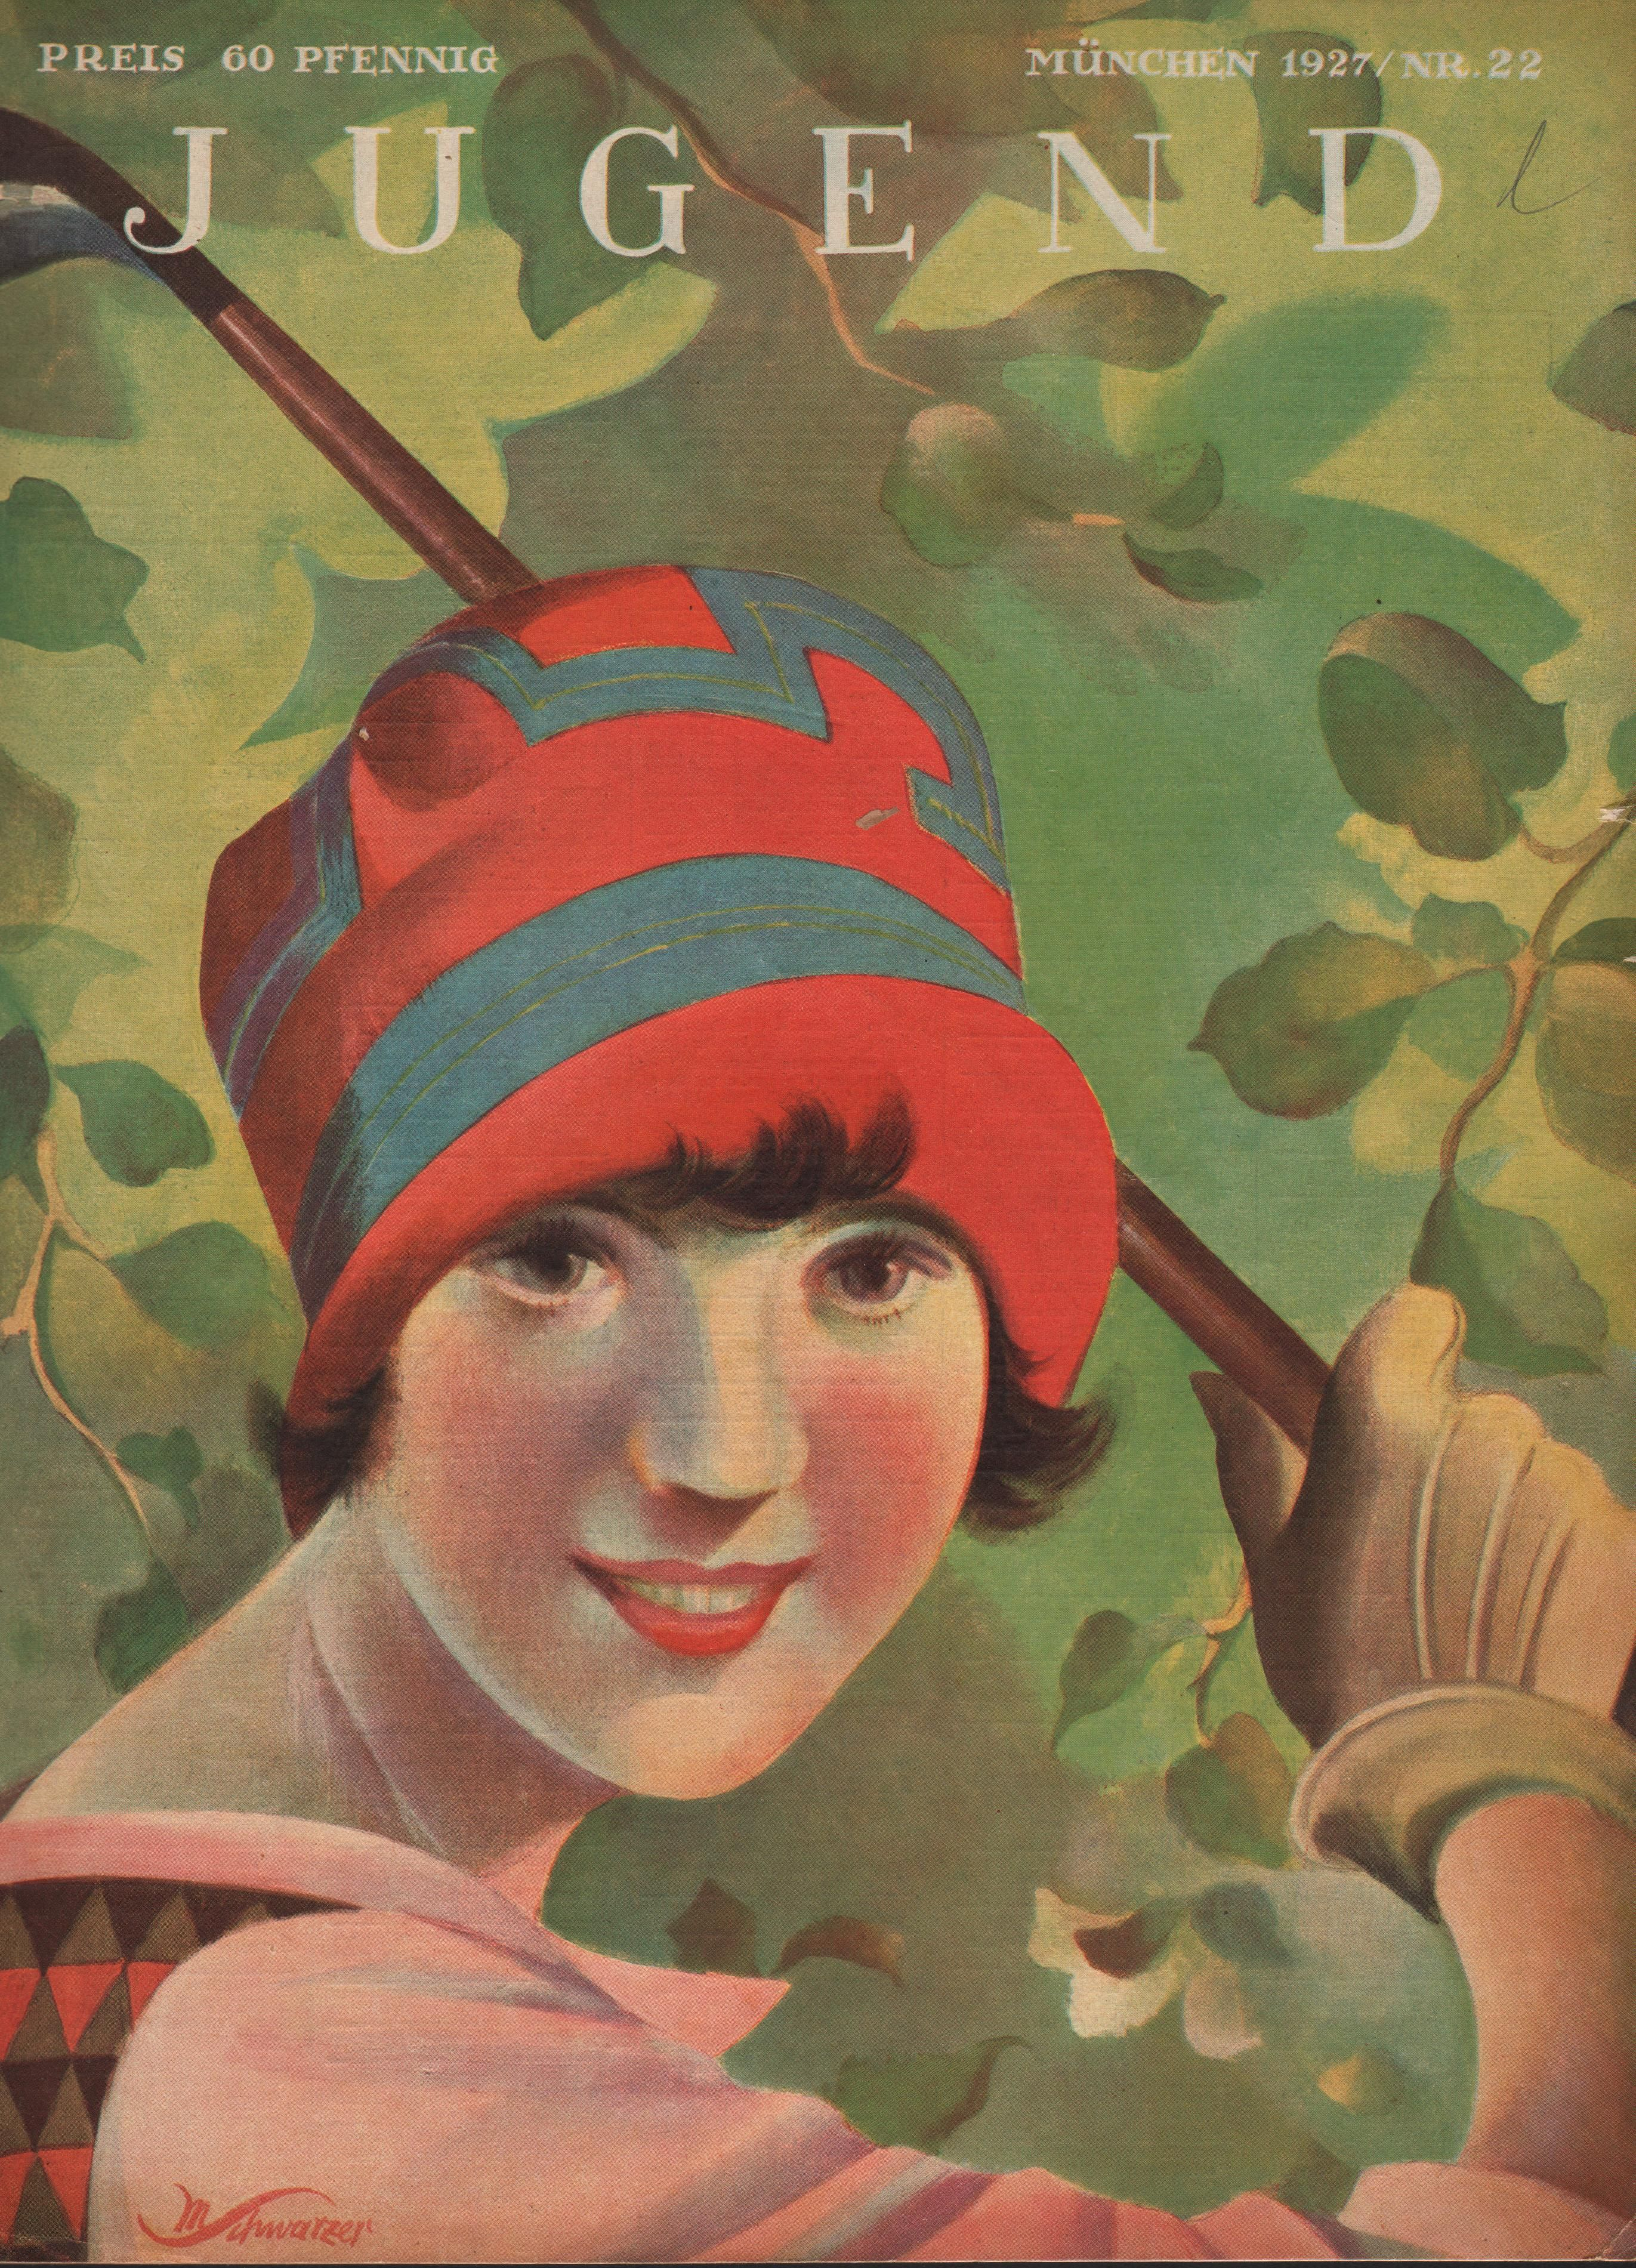 Jugend front cover - 1927